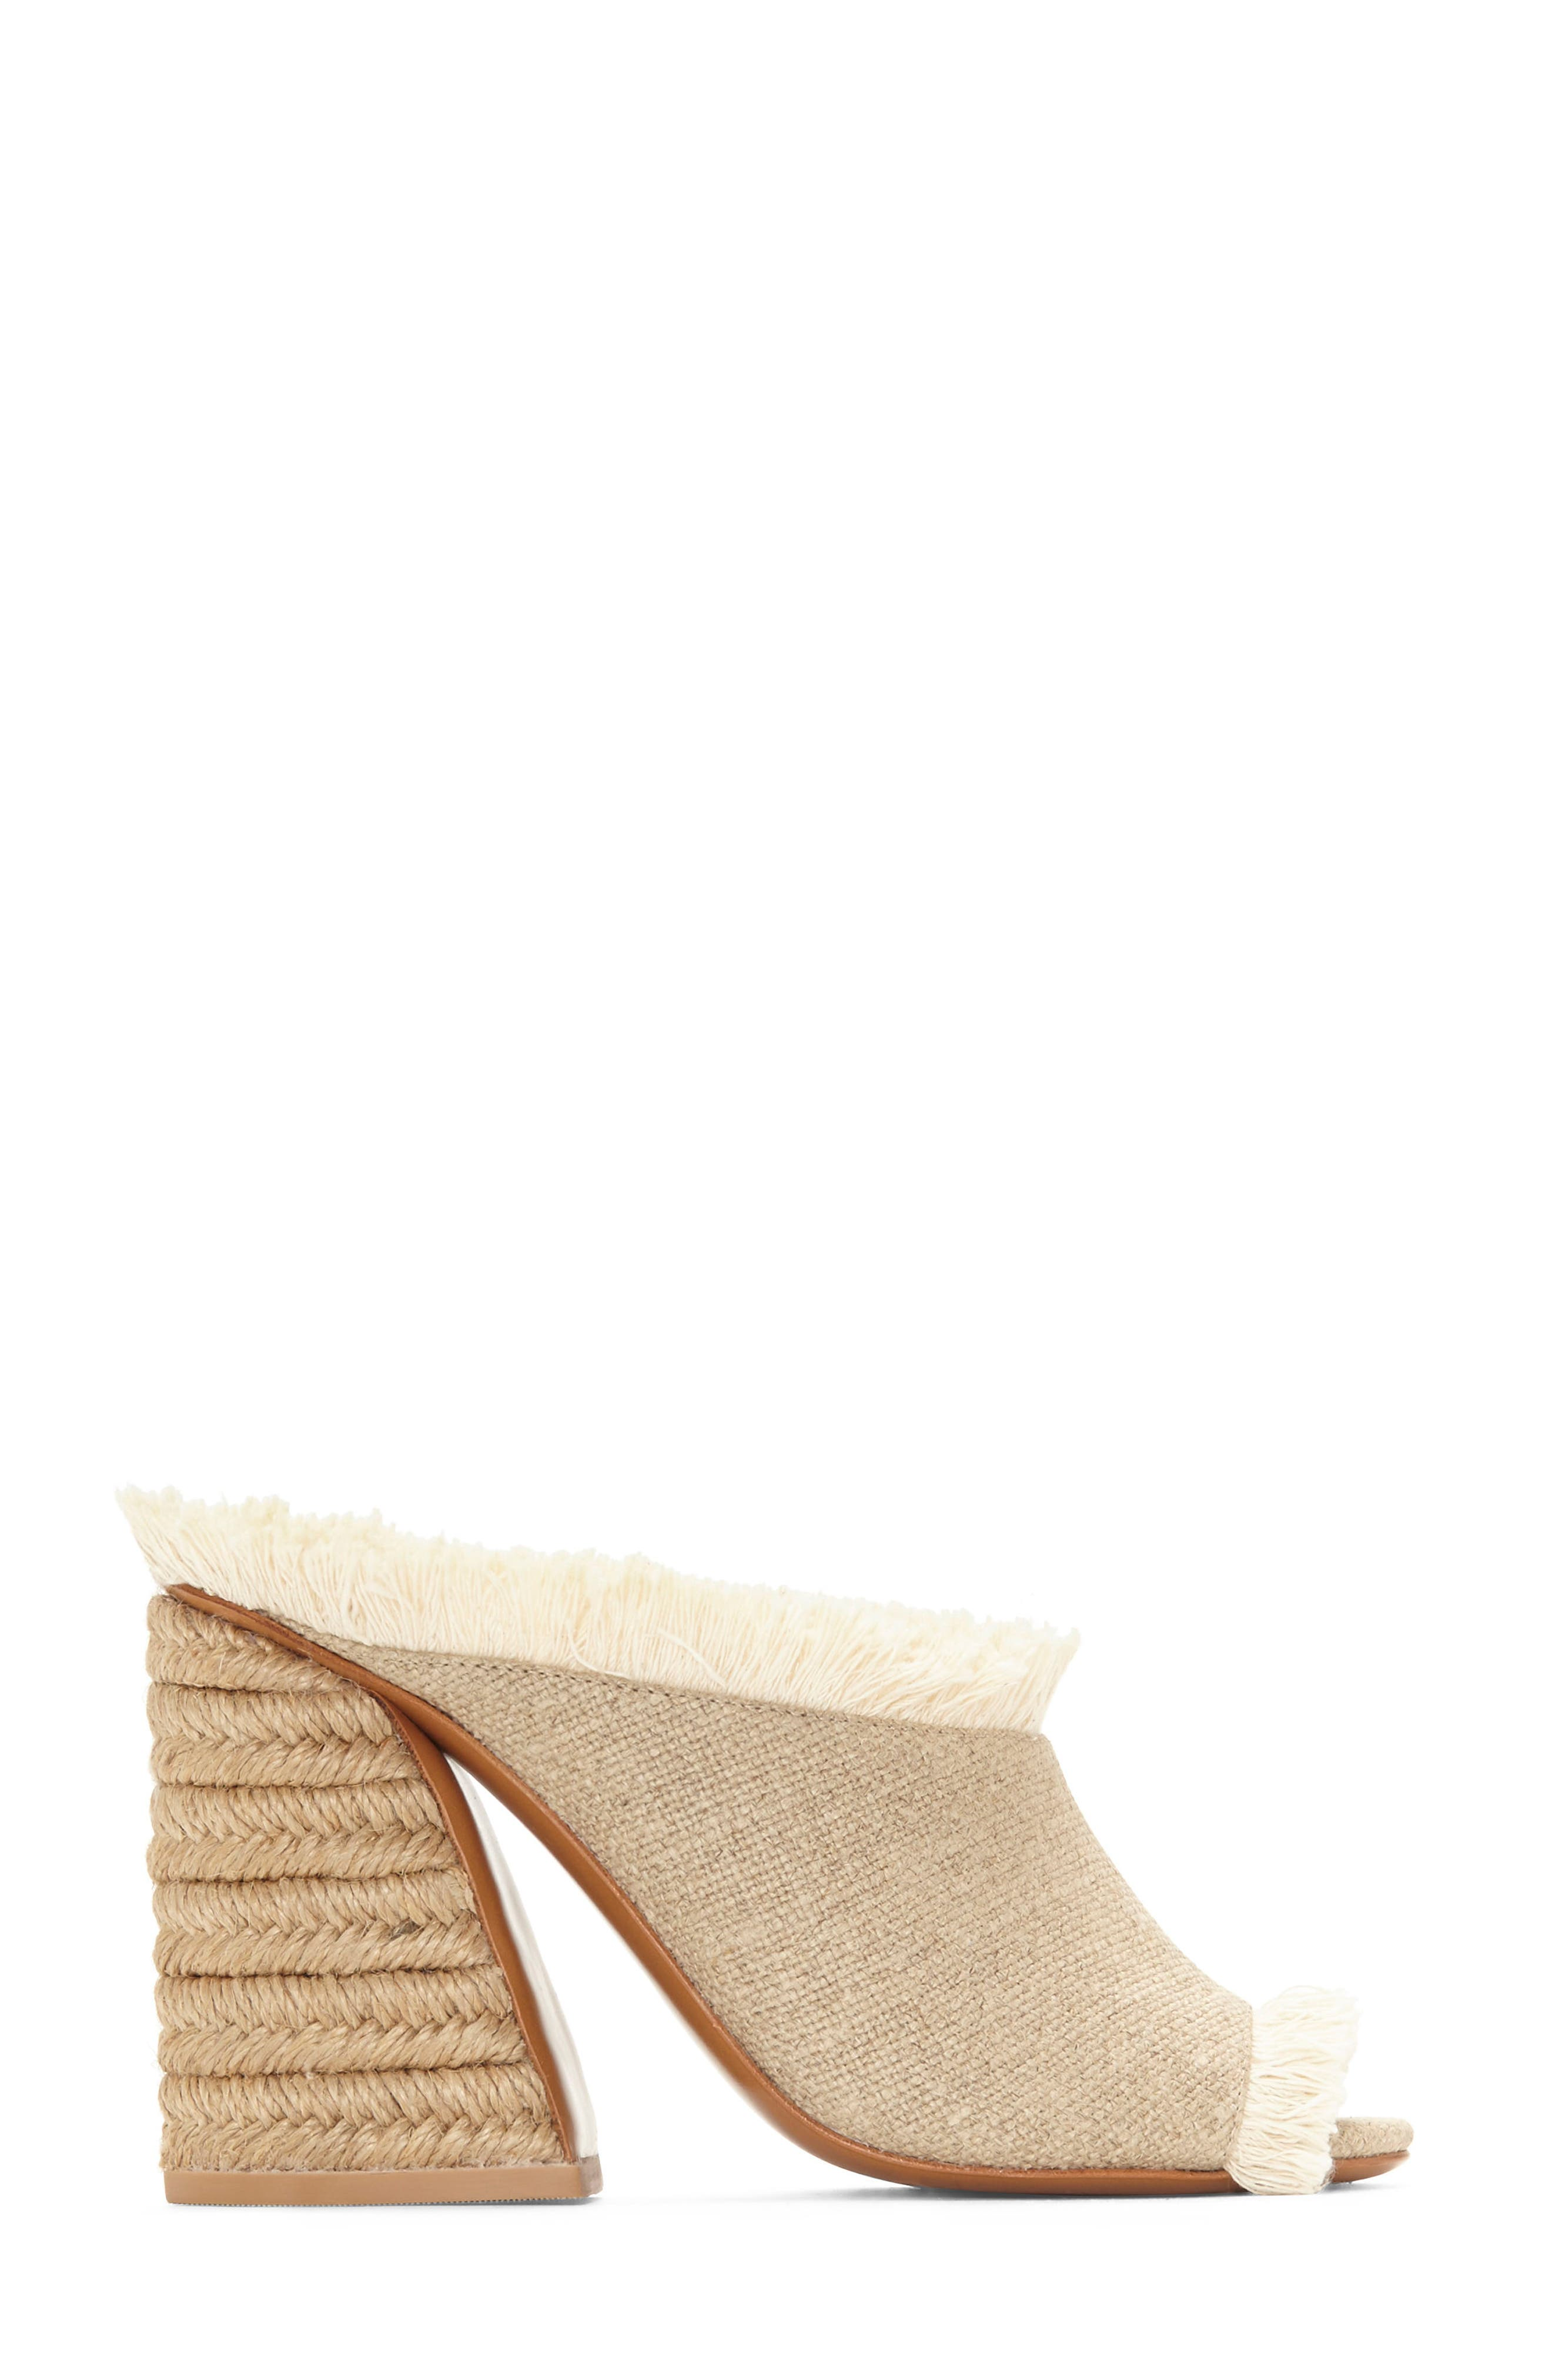 Izar Fringe Asymmetrical Sandal,                             Alternate thumbnail 3, color,                             Natural